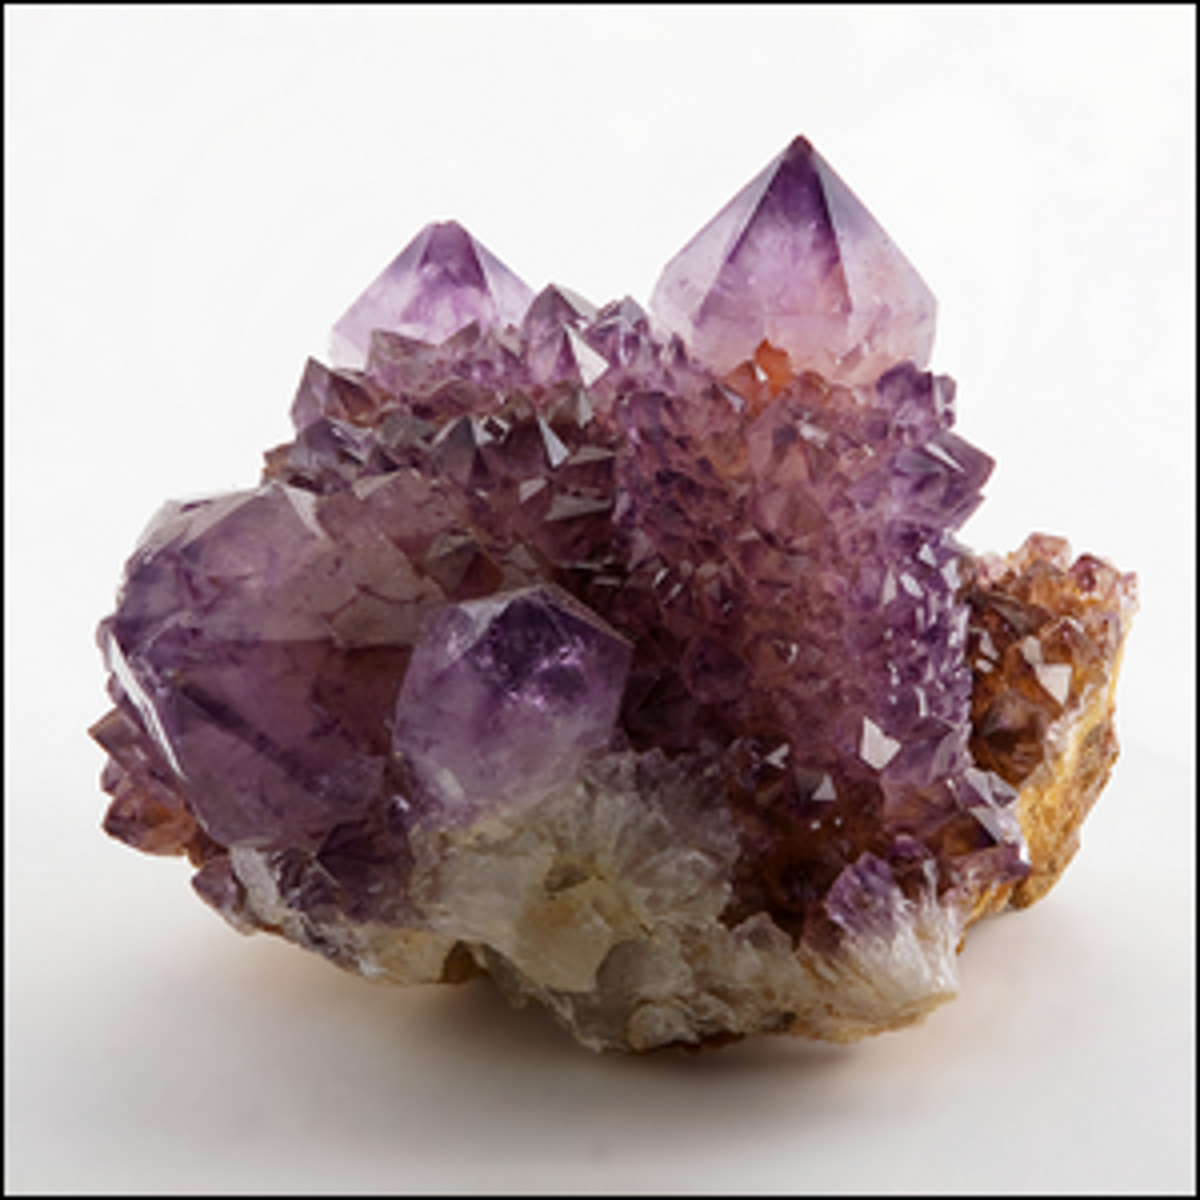 A large sample of amethyst, uncut and in its natural crystalline form.